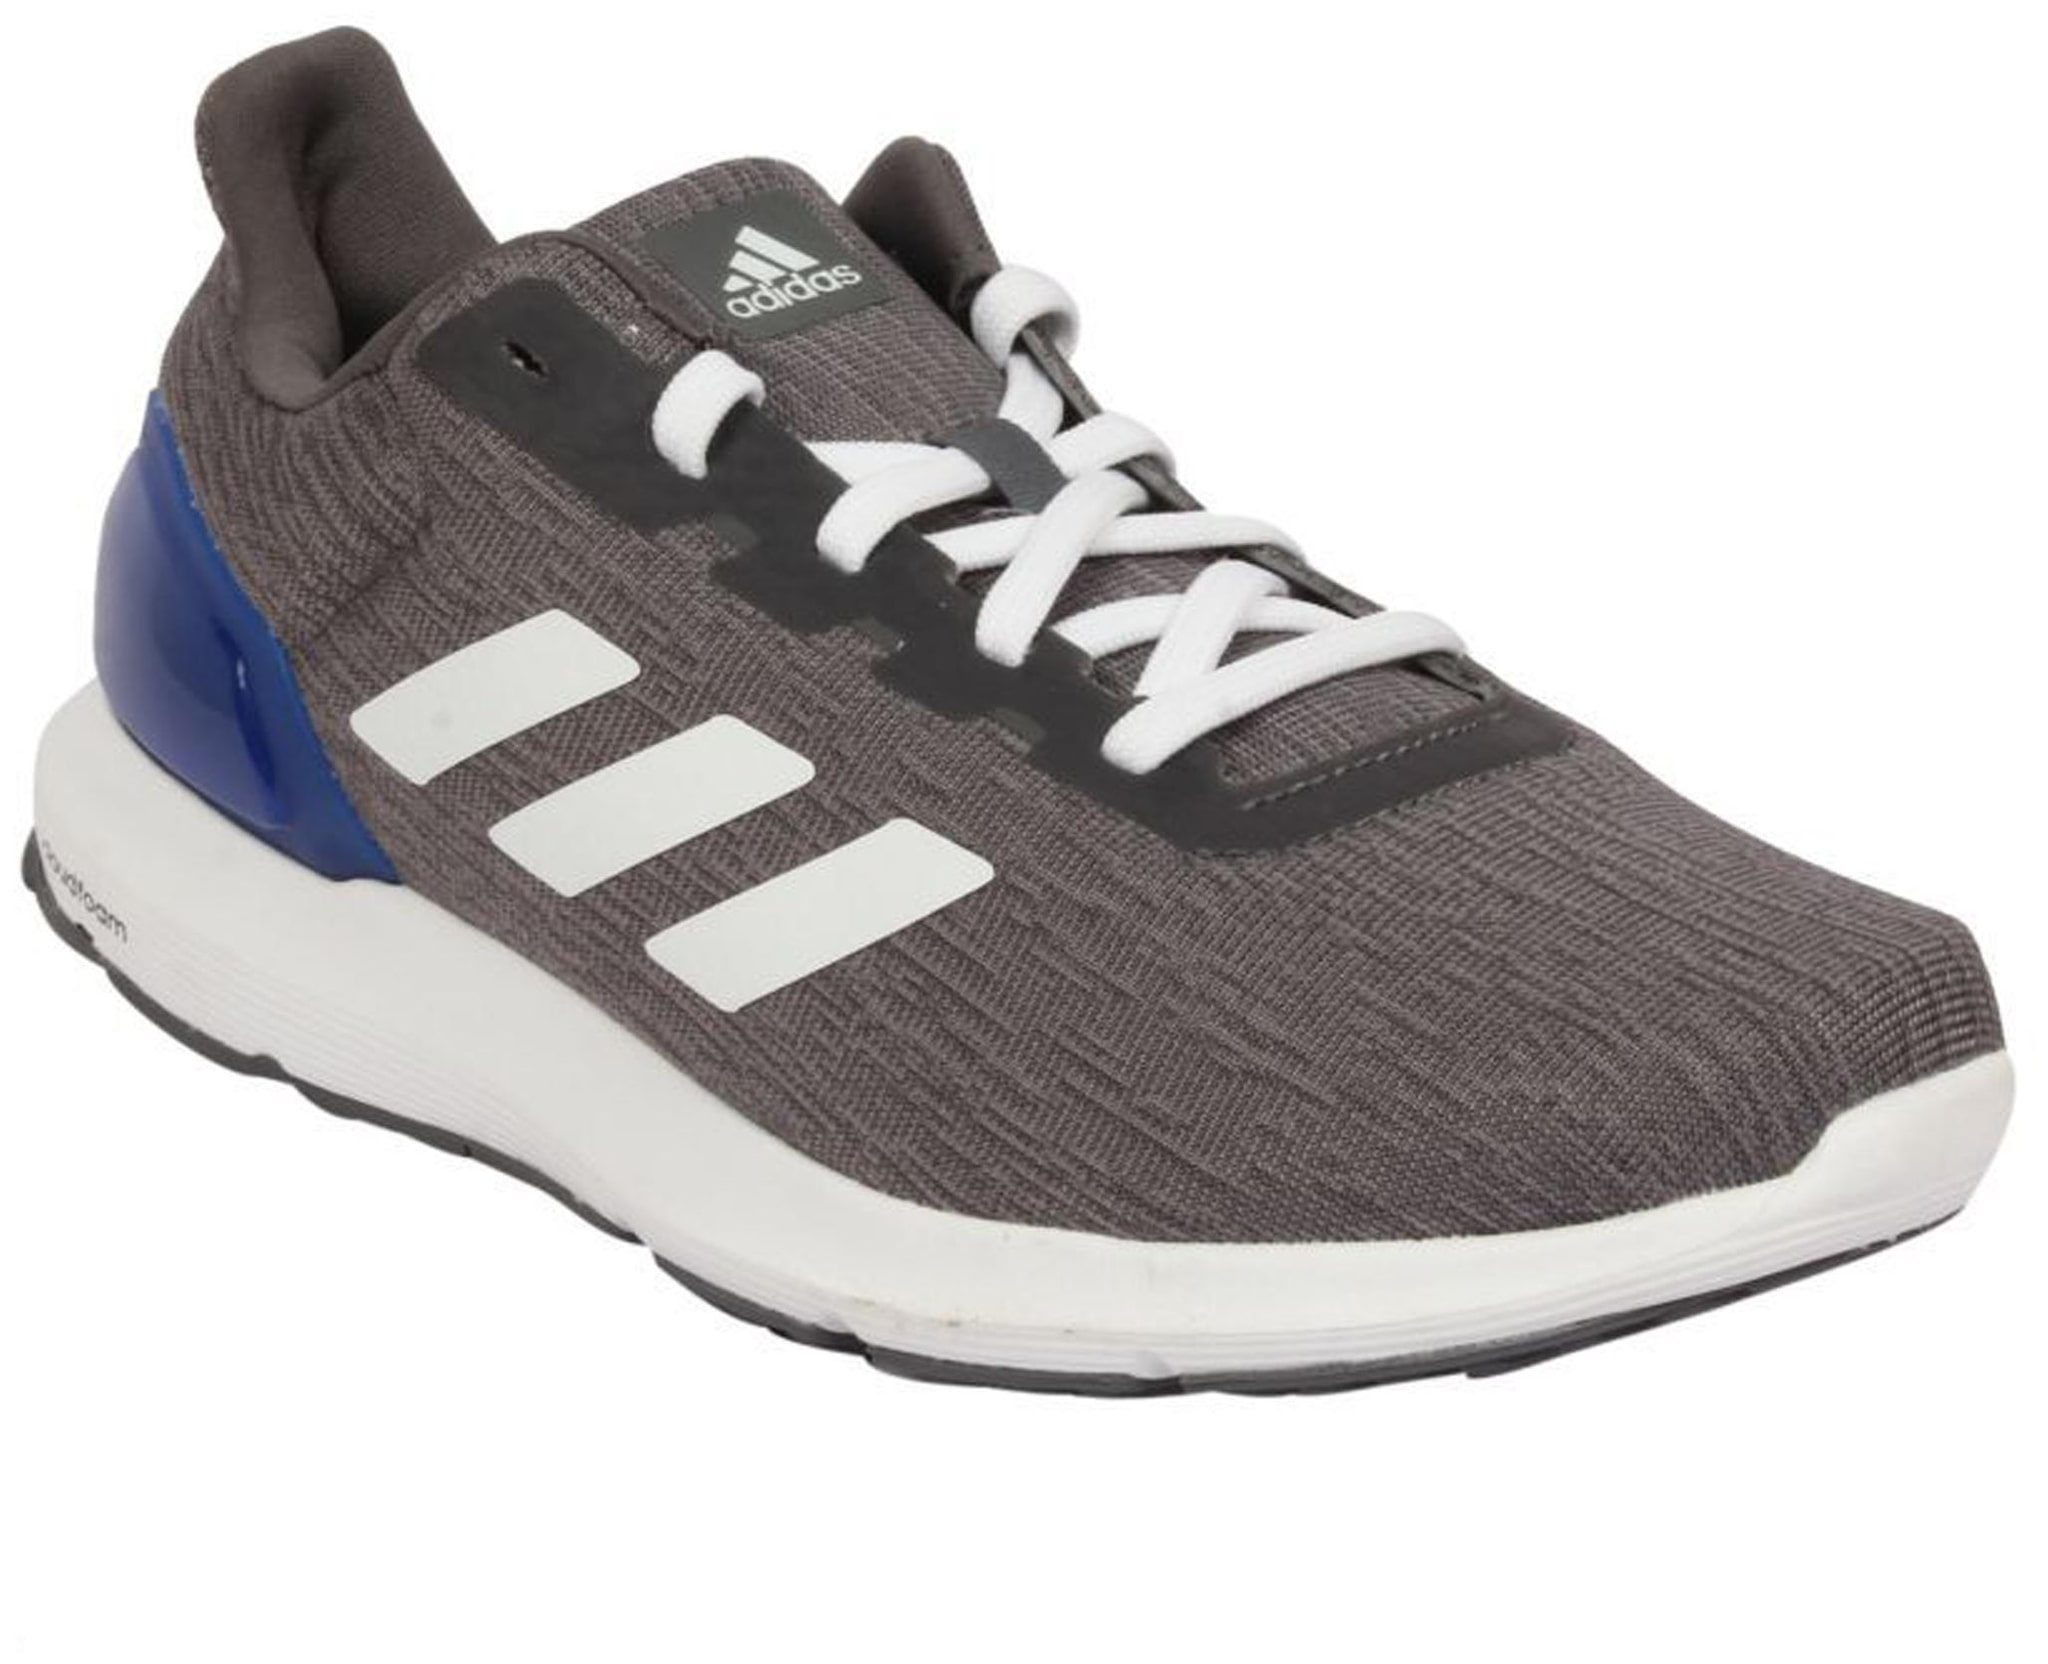 https://assetscdn1.paytm.com/images/catalog/product/F/FO/FOOADIDAS-SPORTSHOE74980E586A8D0/a_0..jpg